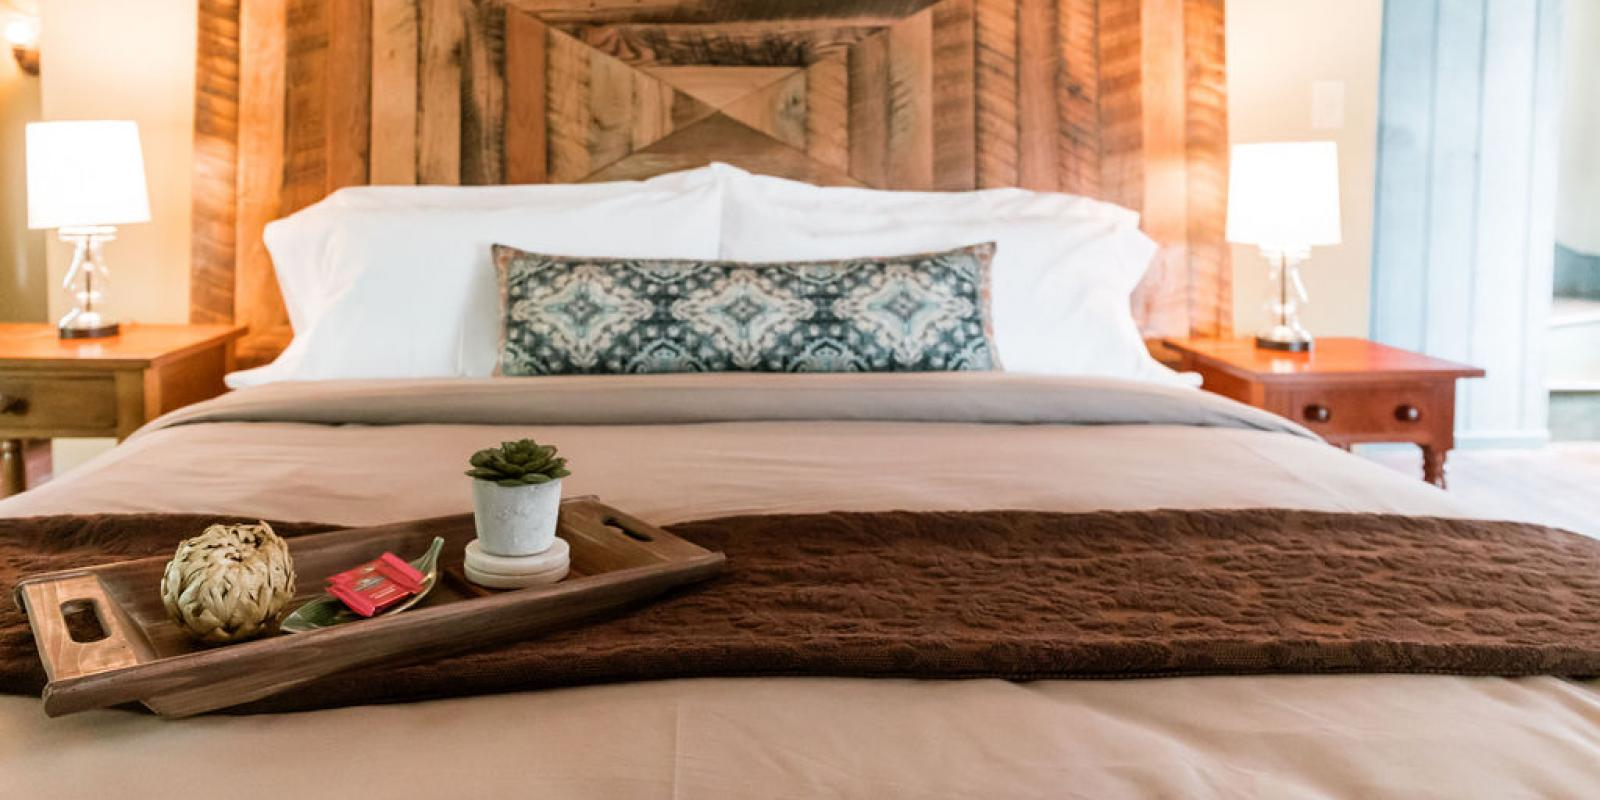 Three bedrooms adorned with luxurious linens and Tempur-Pedic mattresses